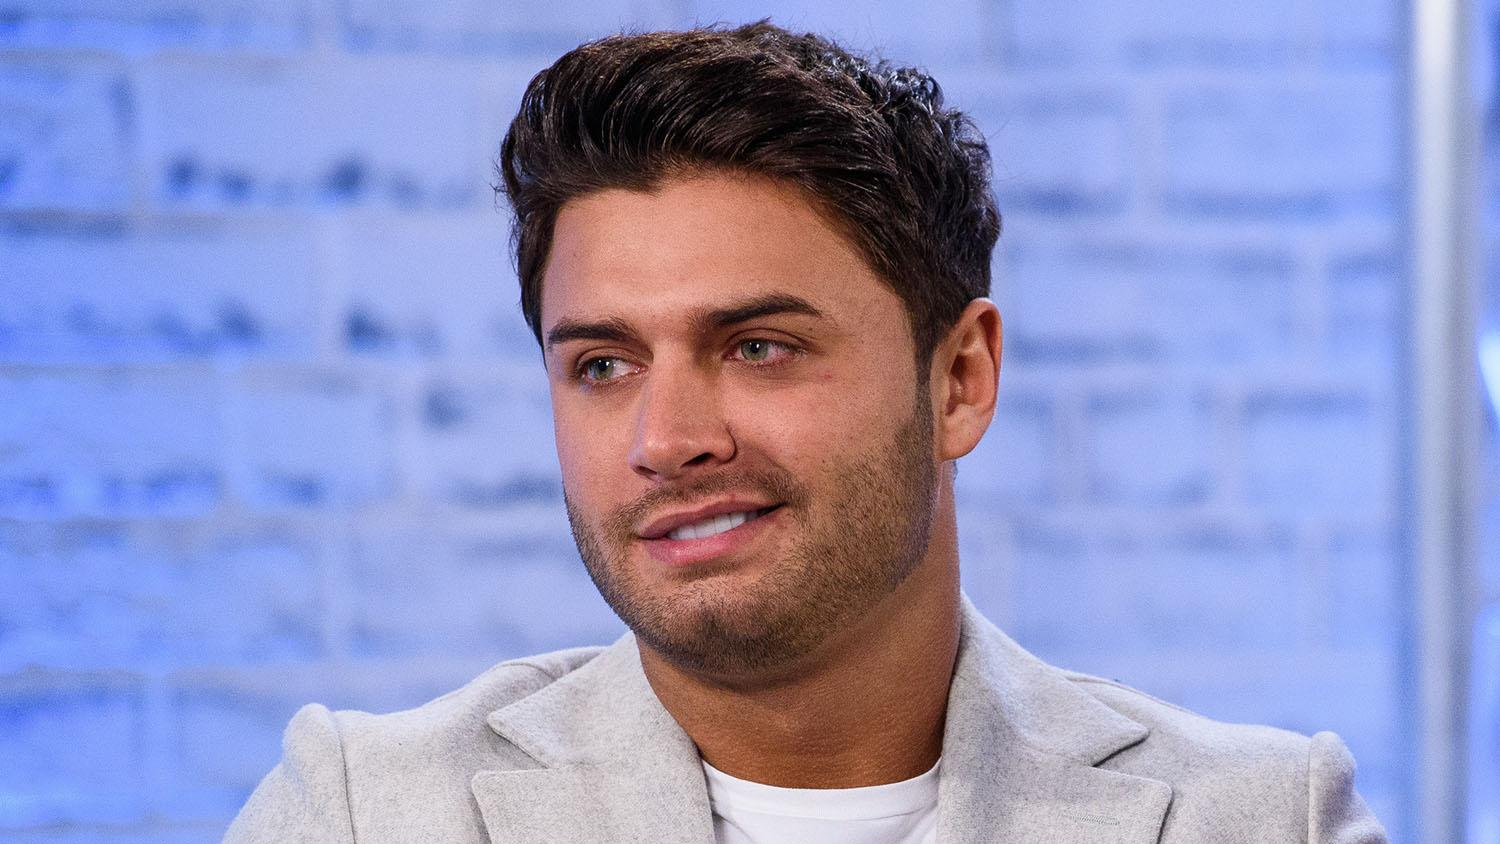 Love Island Star Mike Thalassitis Dead at 26